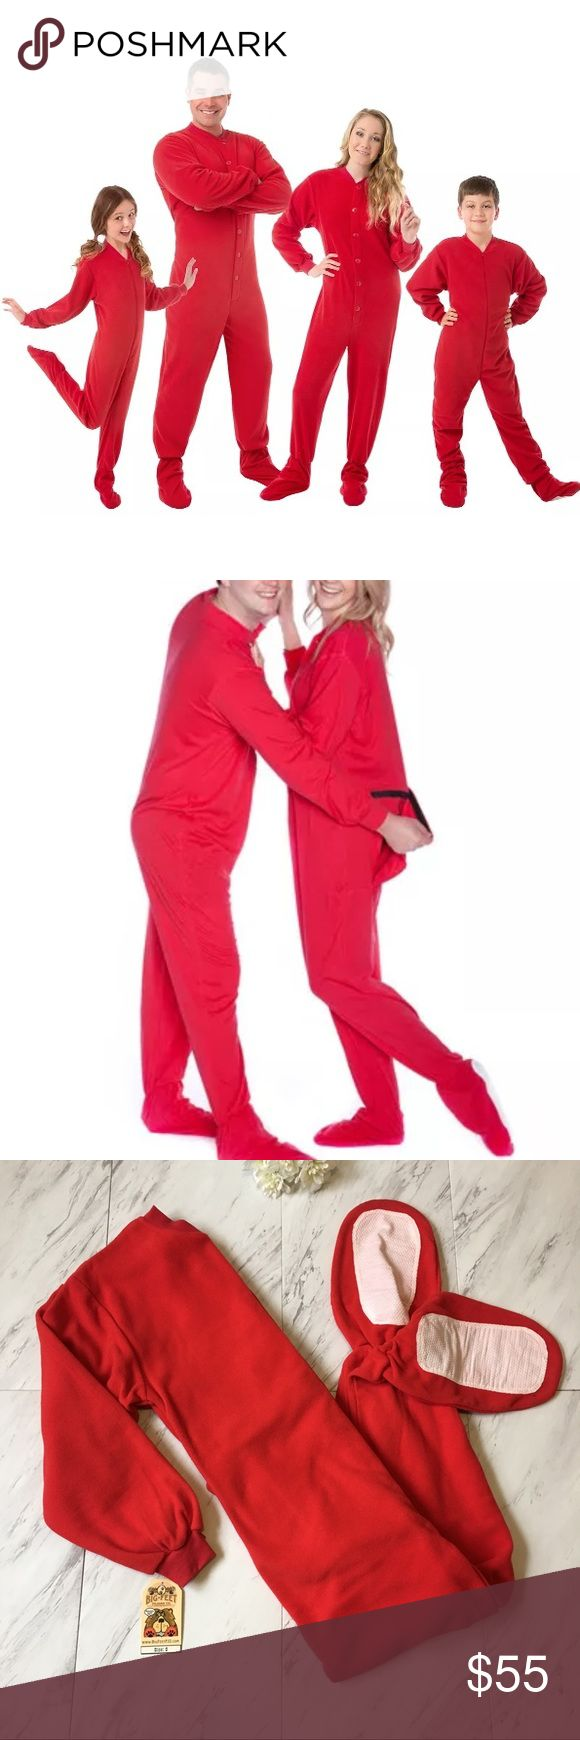 """Christmas Onesie with Drop Seat - Big Feet New with tags!  Features:  🔹Button up front, no skid soles 🔹Drop seat / velcro butt flap 🔹100% cotton fabric  🔹Small will fit up to 5'6"""" and 150 lbs.   As seen on A&E's Gene Simmons Family Jewels and worn by Natalie Portman in """"No Strings Attached!""""  💗💗Thank you for visiting my closet at Freelancemoda! Please check out my other items for more great deals! 💗💗 Big Feet Pajama Co. Intimates & Sleepwear Pajamas"""